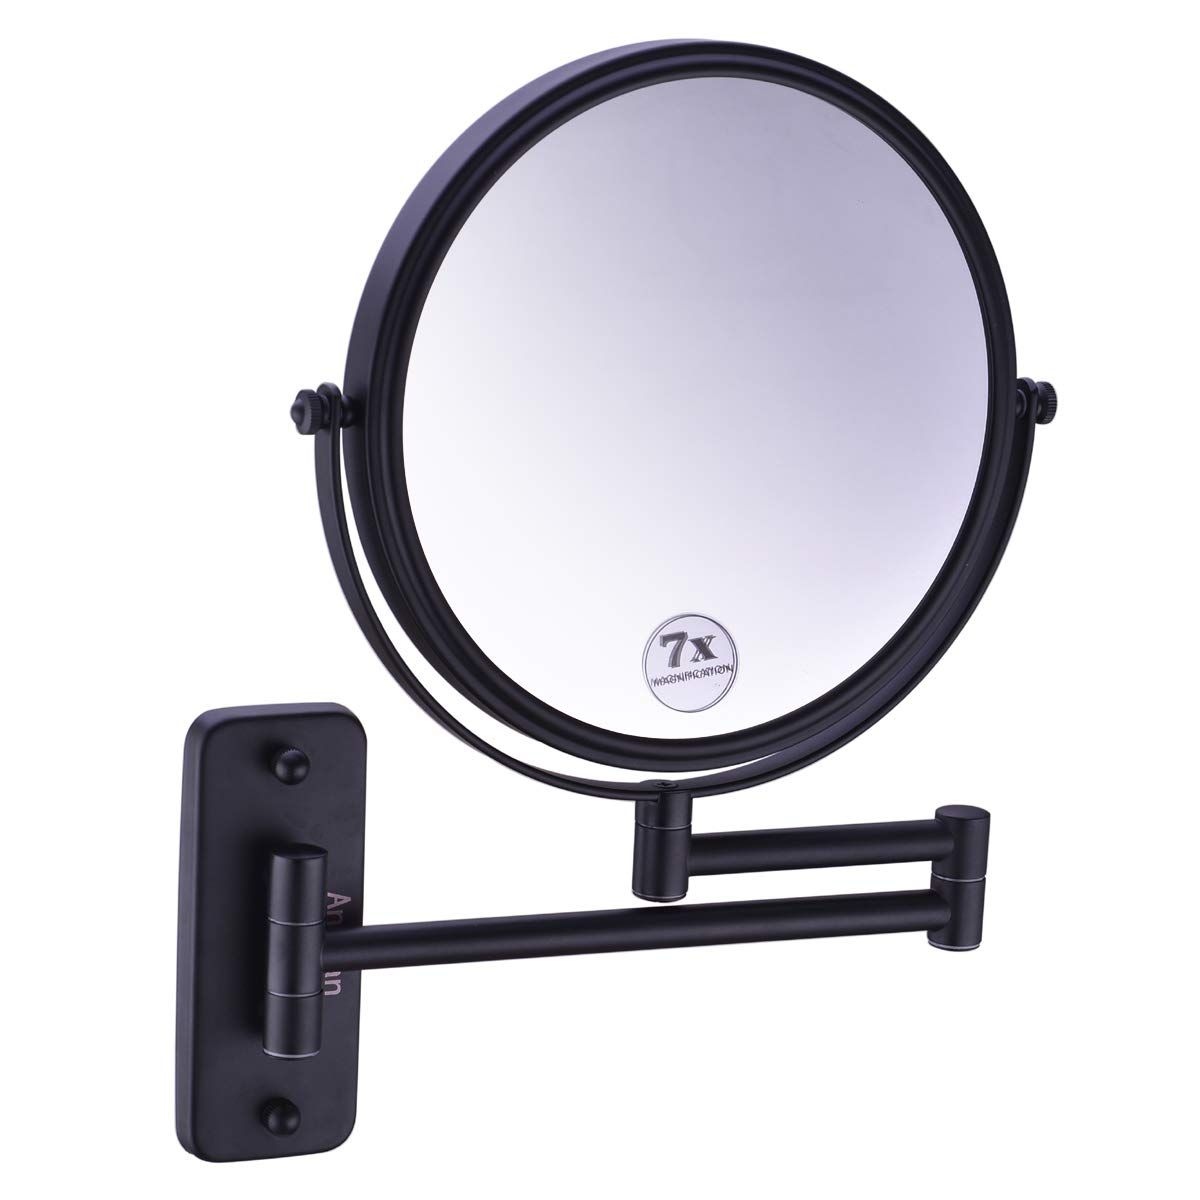 Anpean 8 Inch Double Sided Swivel Wall Mounted Makeup Mirror With 7x Magnification Matte Black In 2020 Wall Mounted Makeup Mirror Wall Mounted Magnifying Mirror Mirror